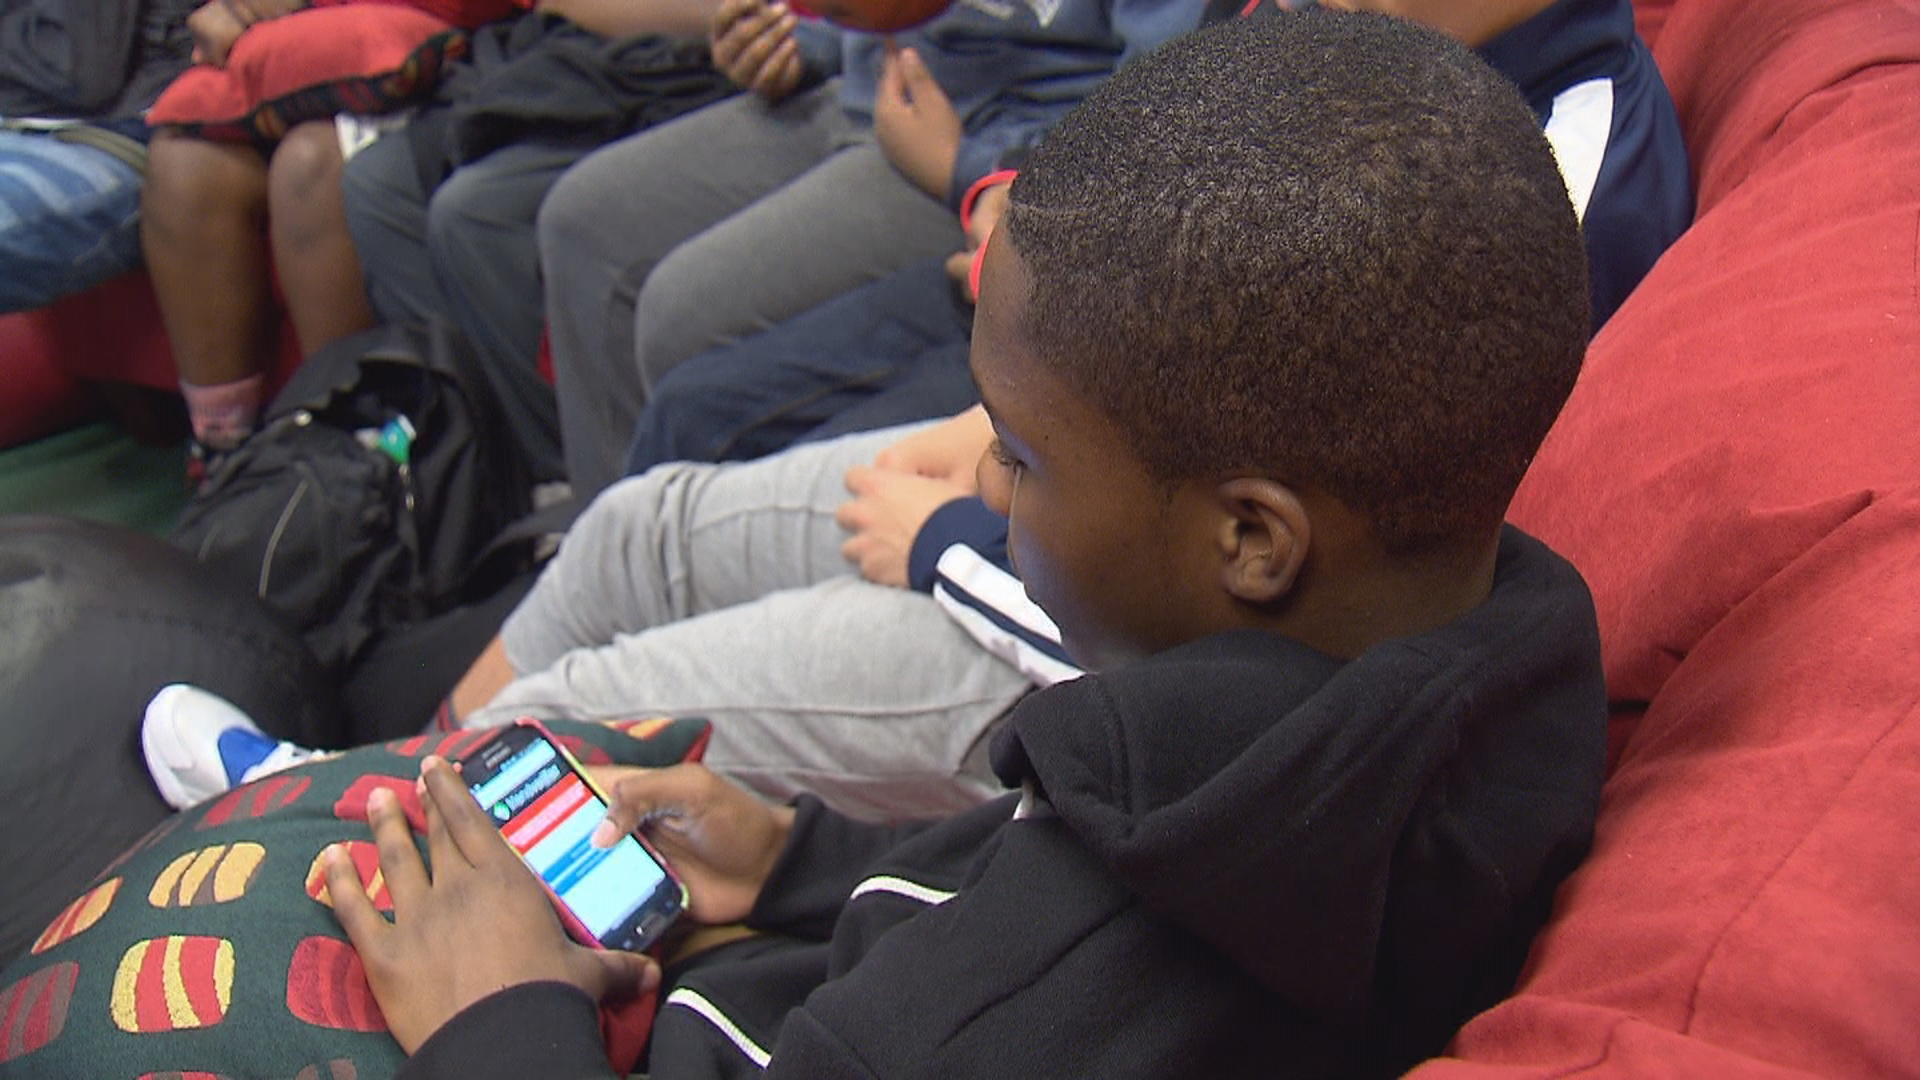 Teens test the app at Boys and Girls Club in Portland. (KOIN 6 News)